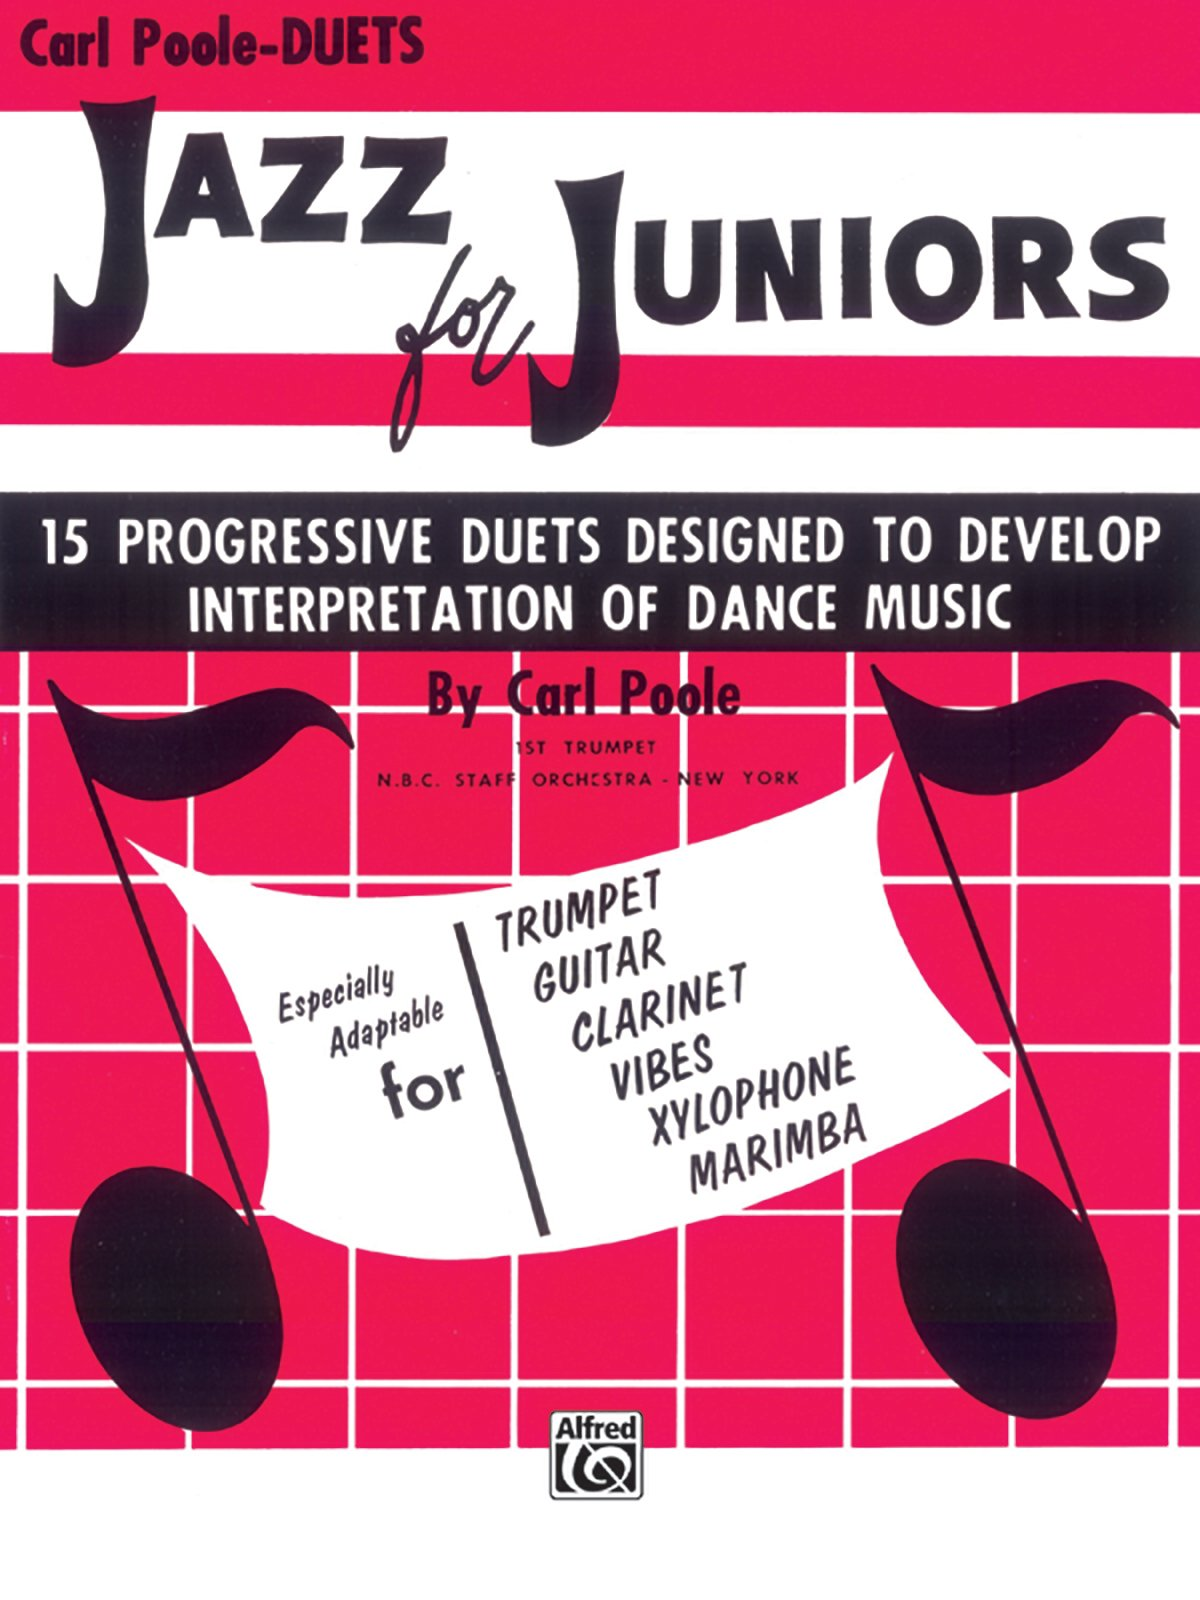 Jazz for Juniors: Duets 15 Progressive Duets Desigined To Develop Interpretation Of Dance Music